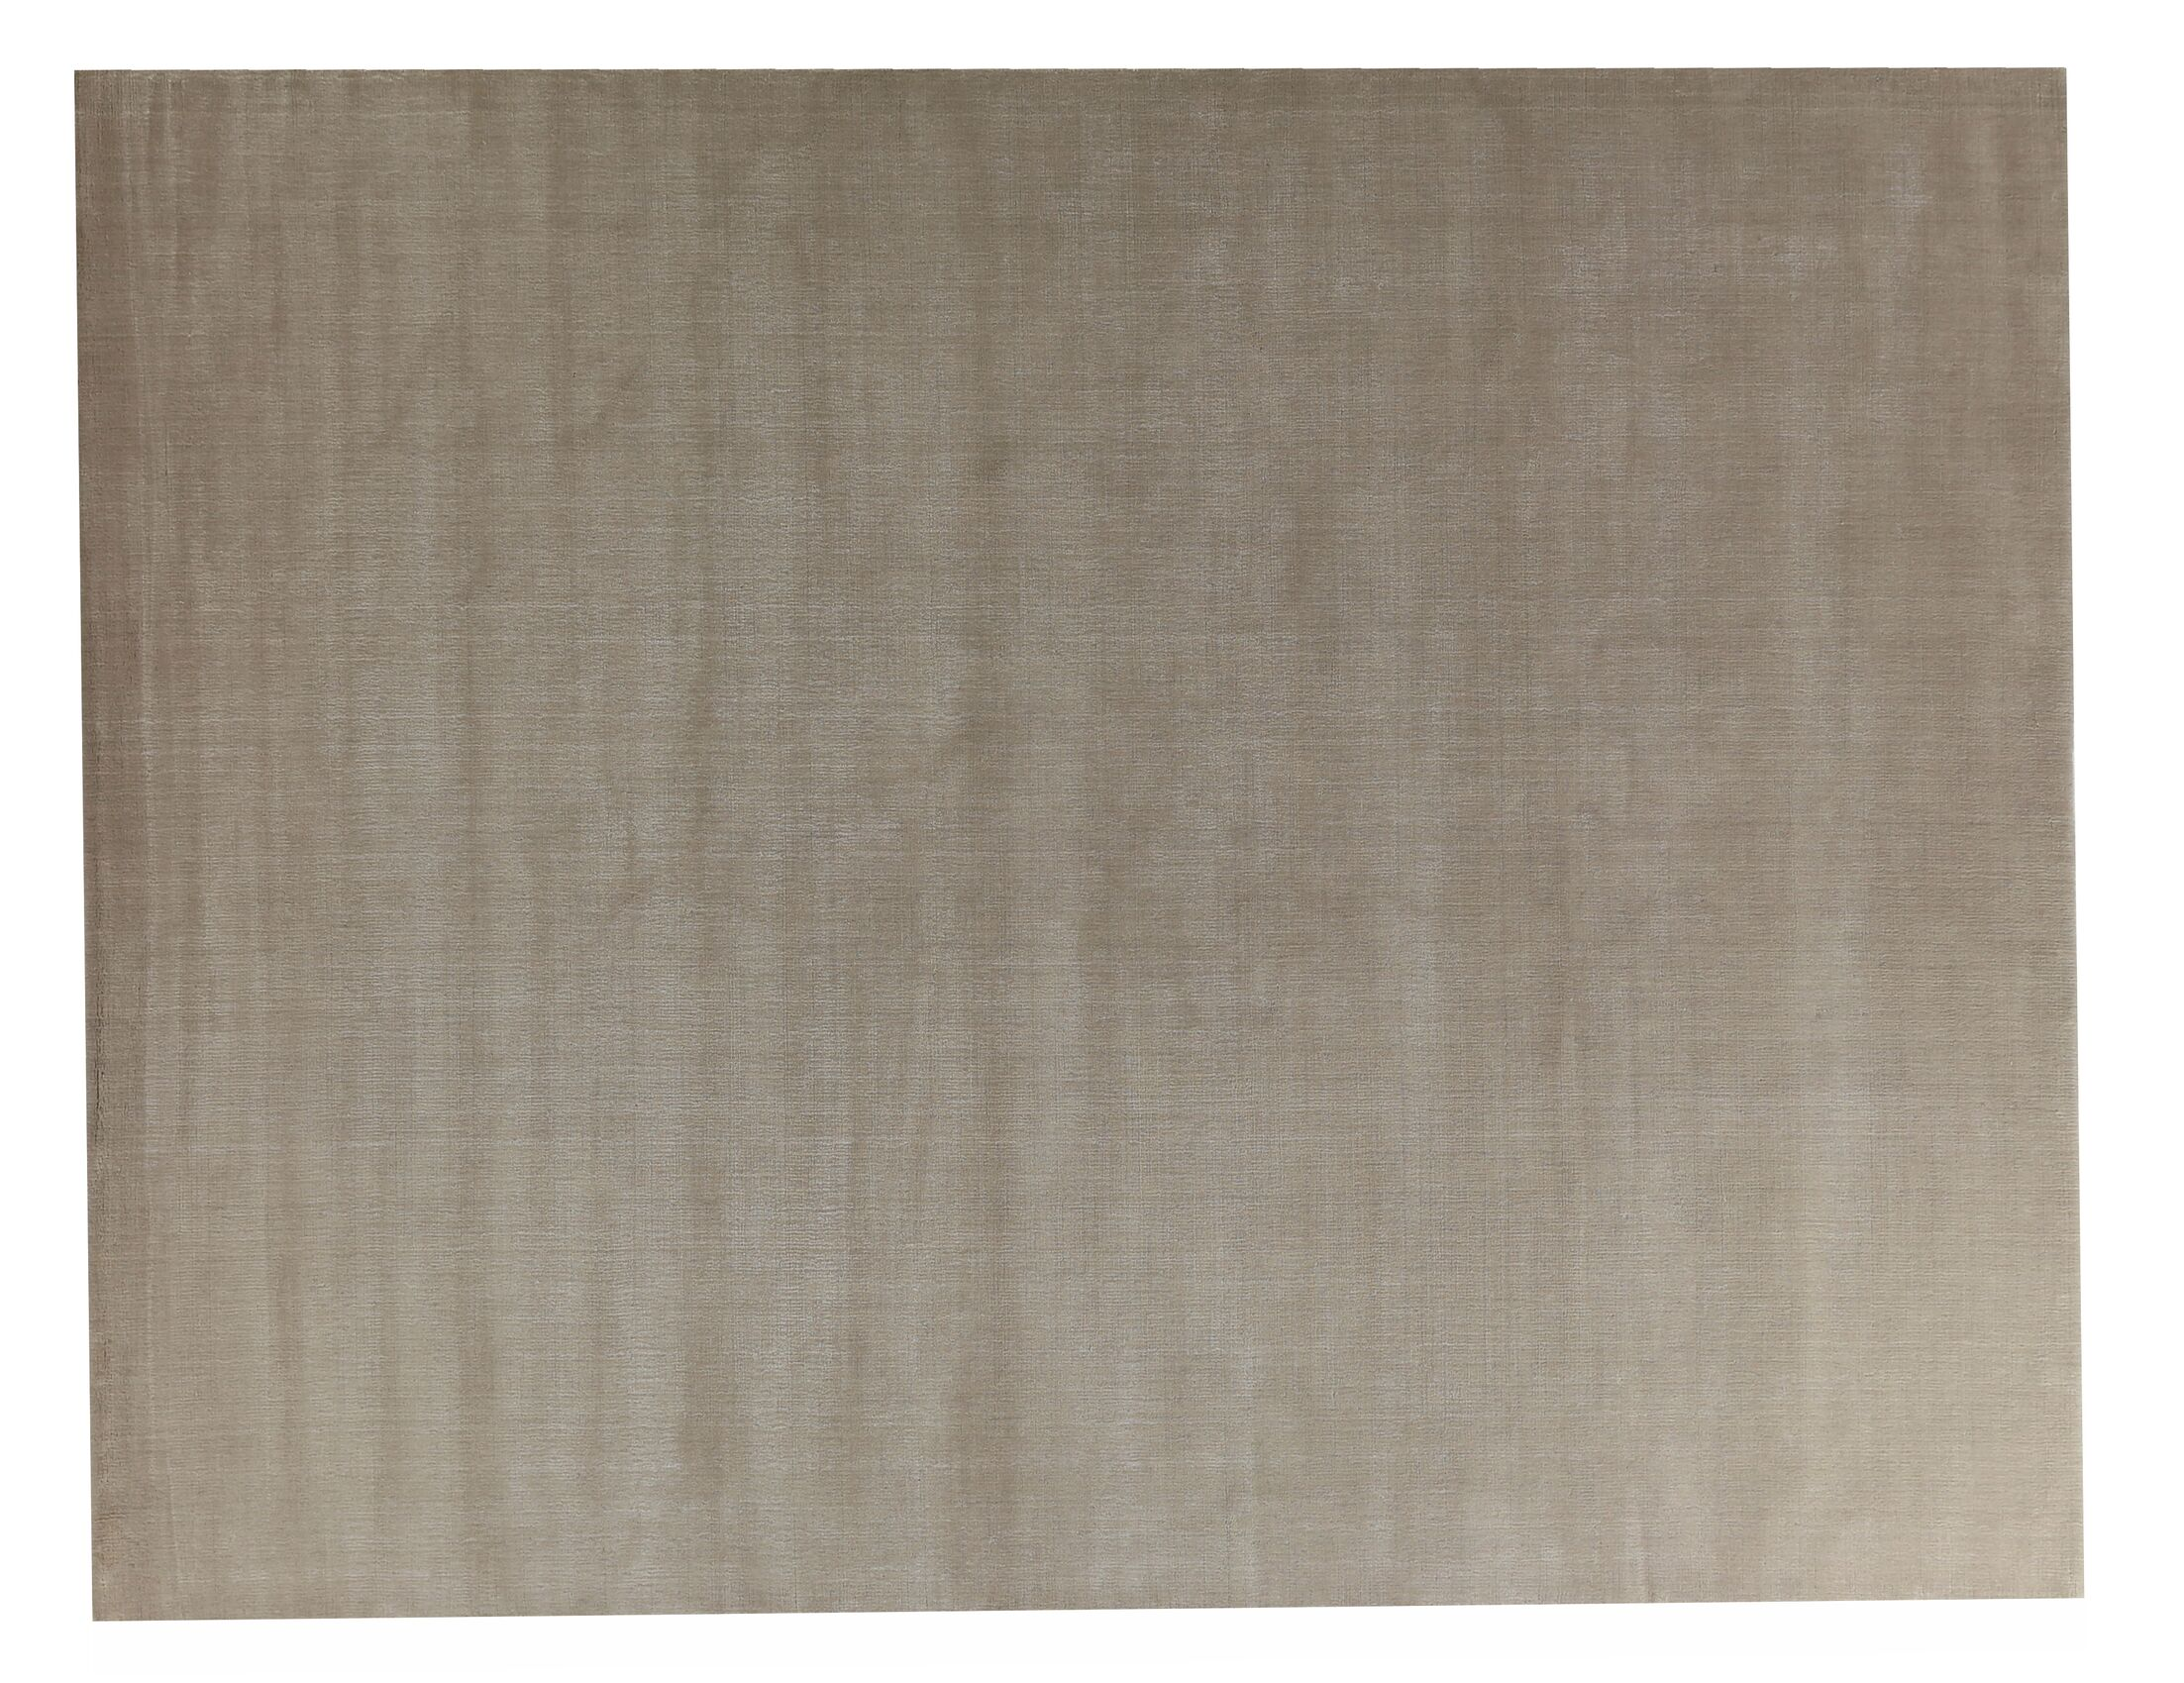 Gem Hand-Woven Brown Area Rug Rug Size: Rectangle 14' x 18'